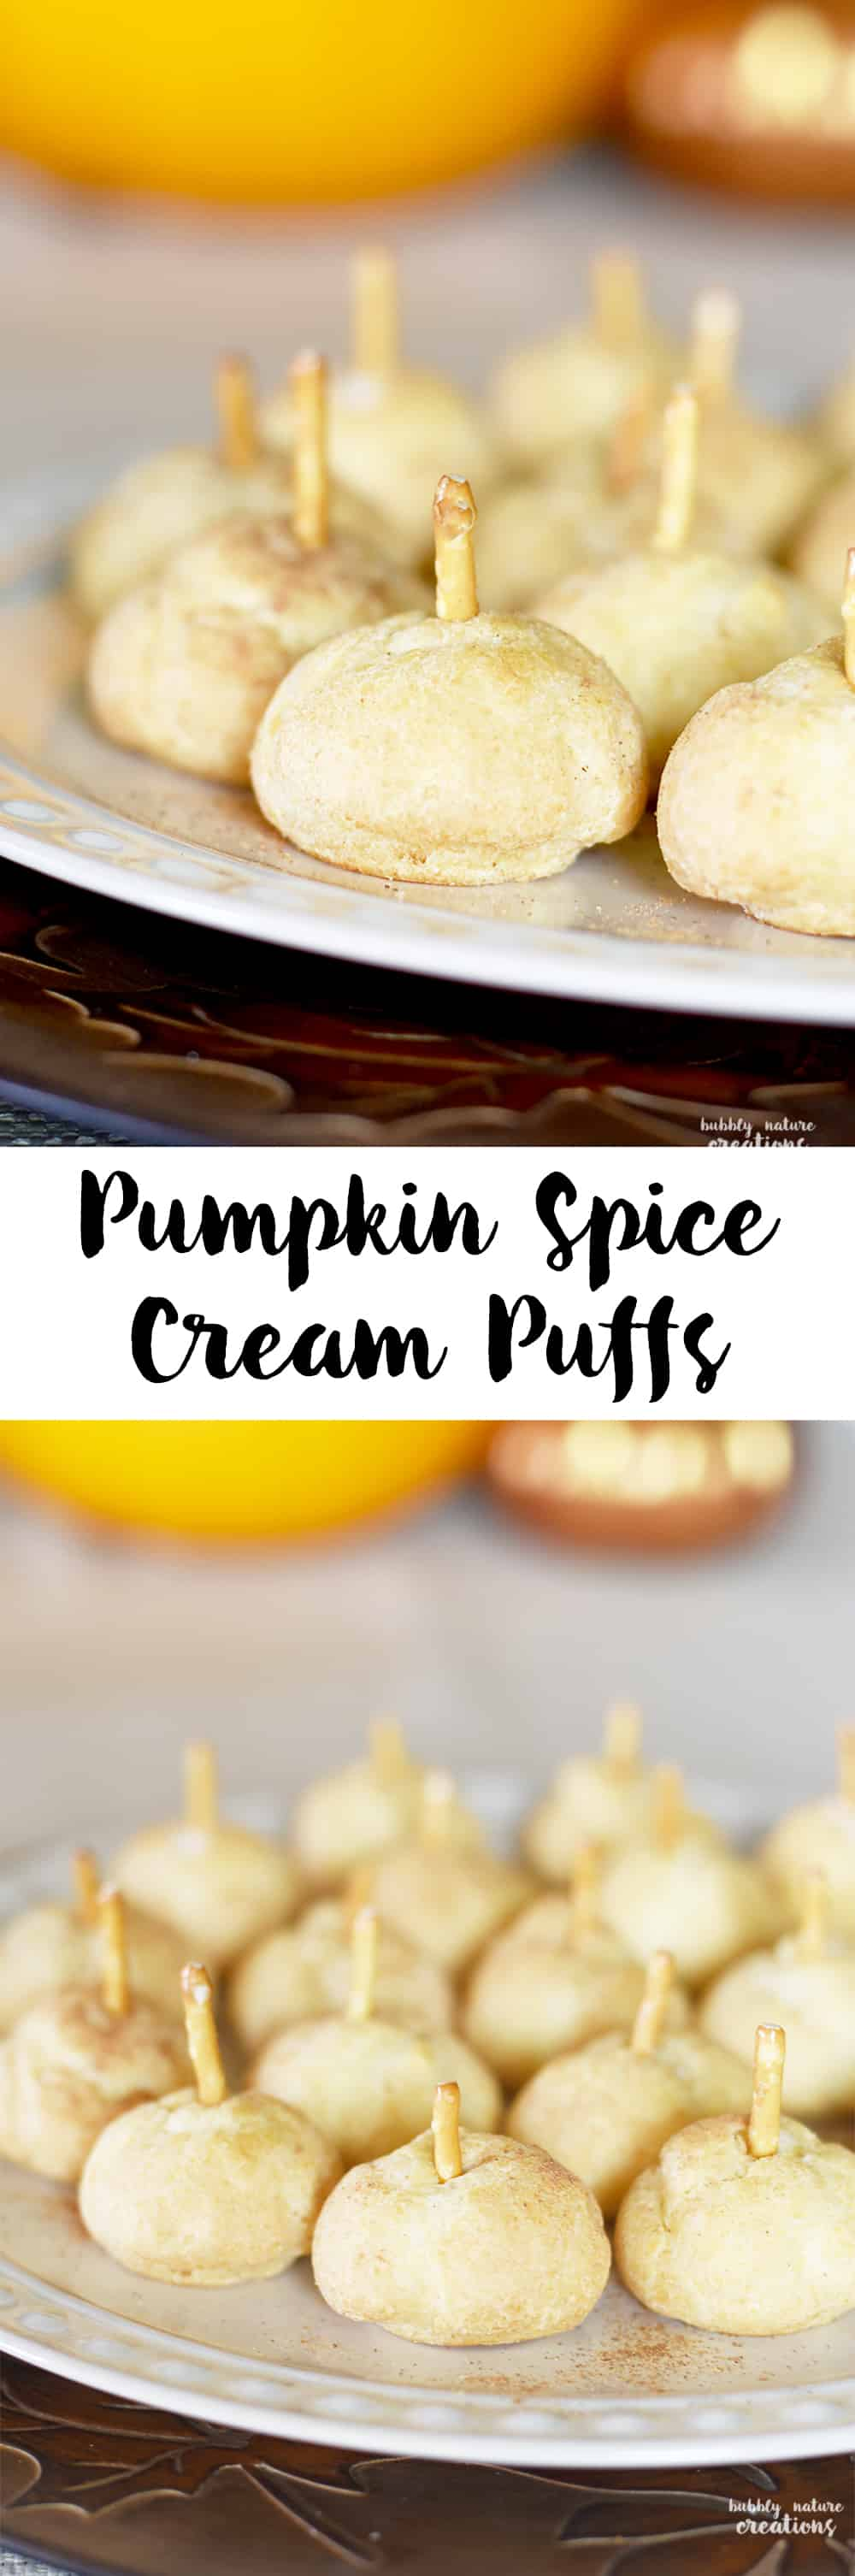 Pumpkin Spice Cream Puffs! So easy and cute for Thanksgiving dessert or any fall occasion!